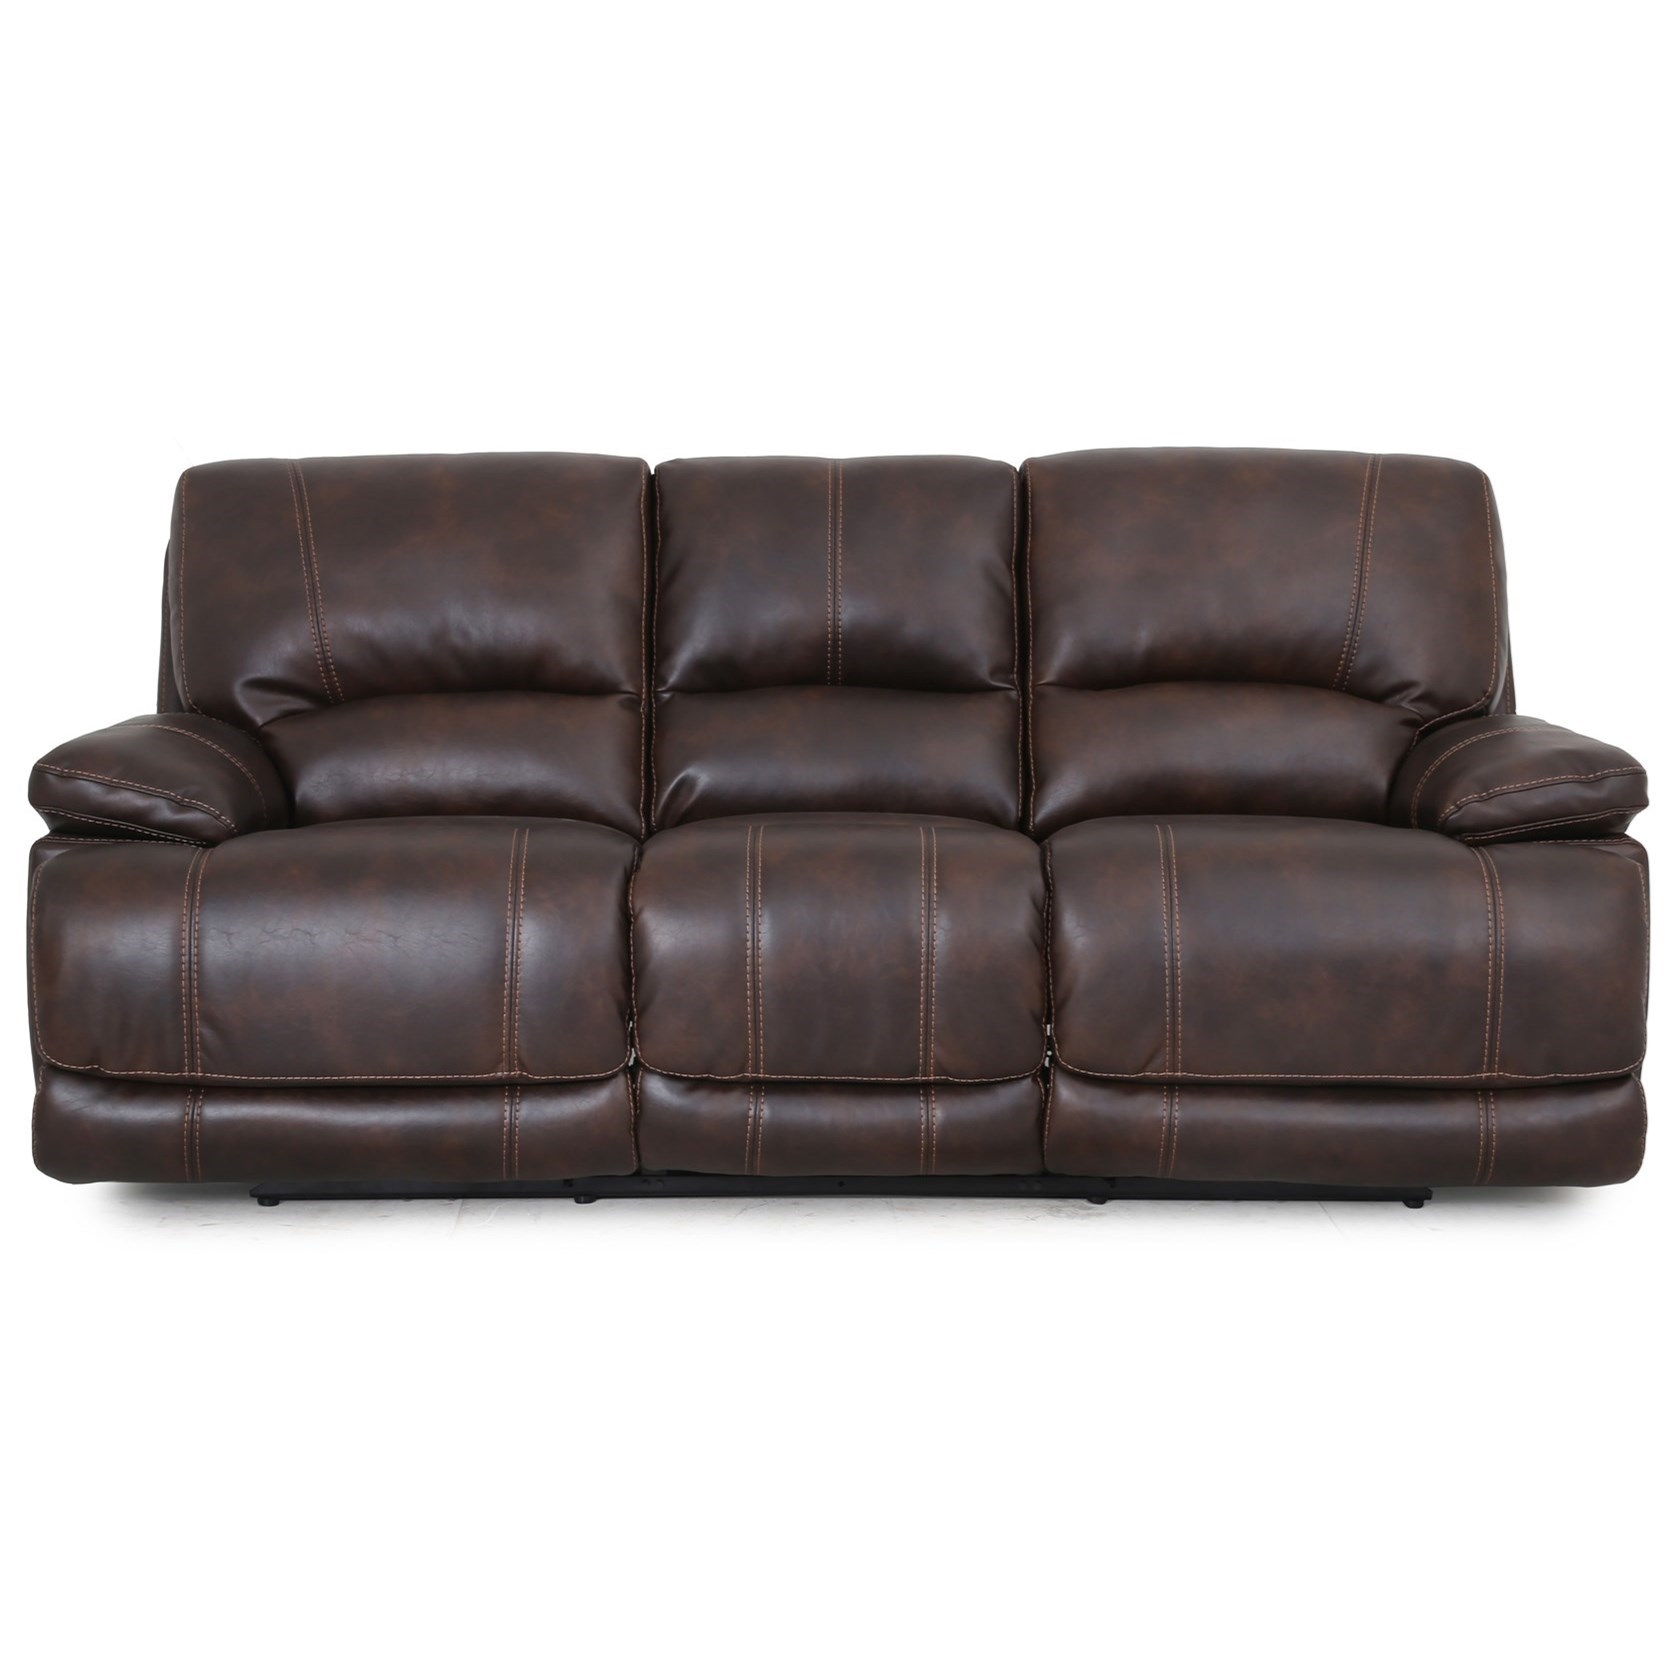 Shelton Dual Power Motion Sofa with Power Headrests Rotmans